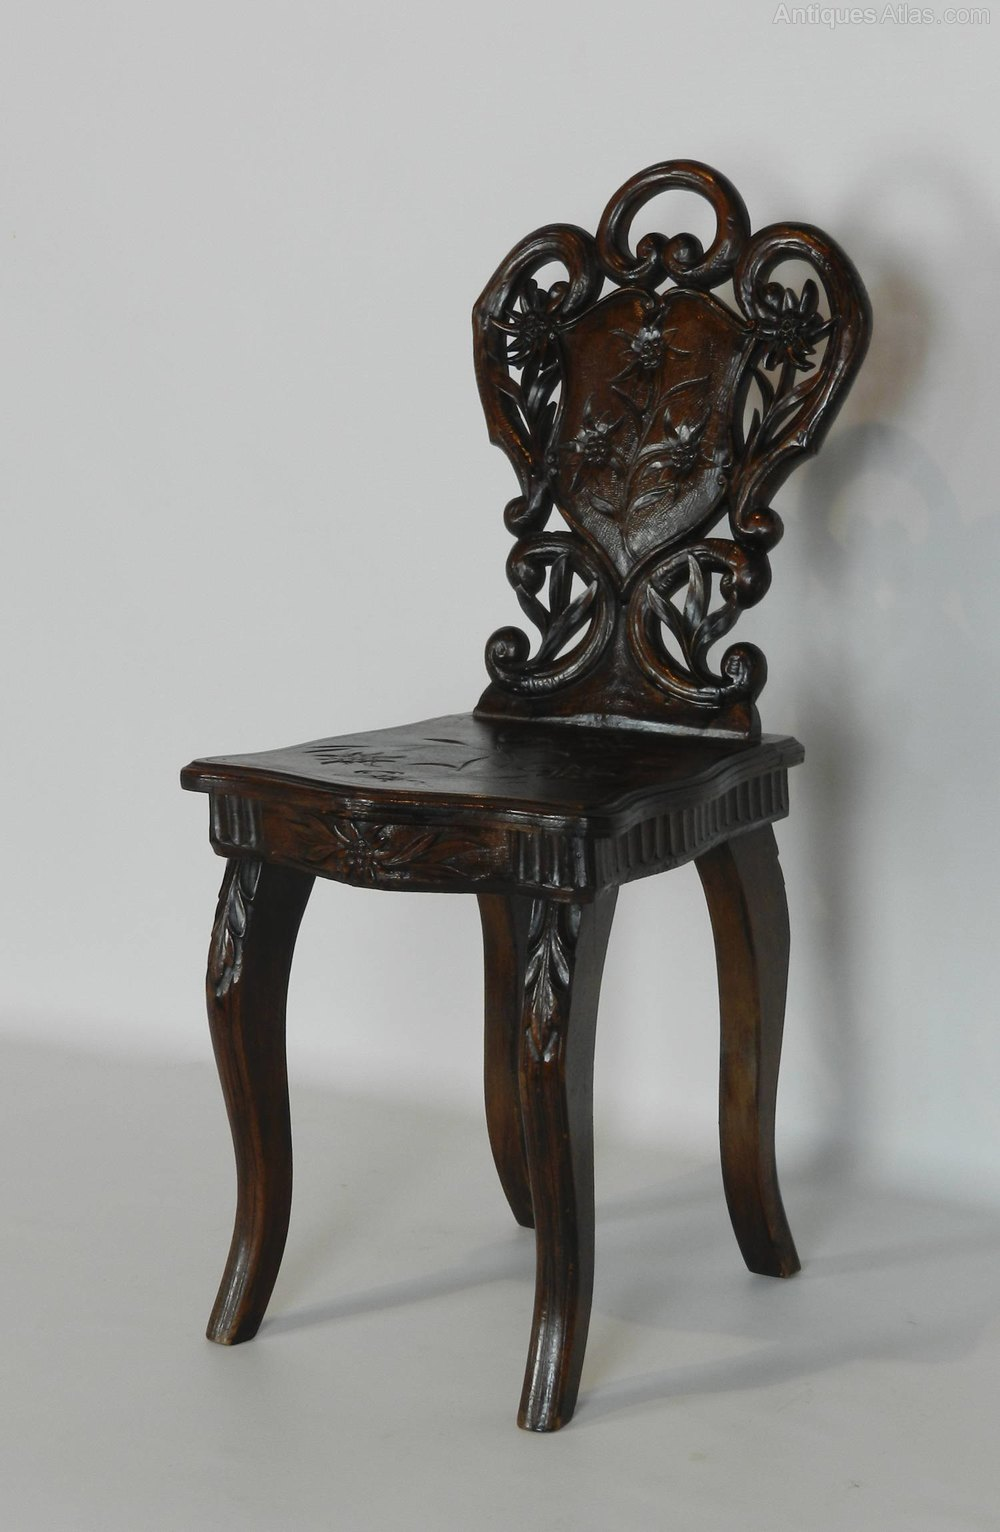 Small Antique Chair - Small Antique Chair Antique Furniture